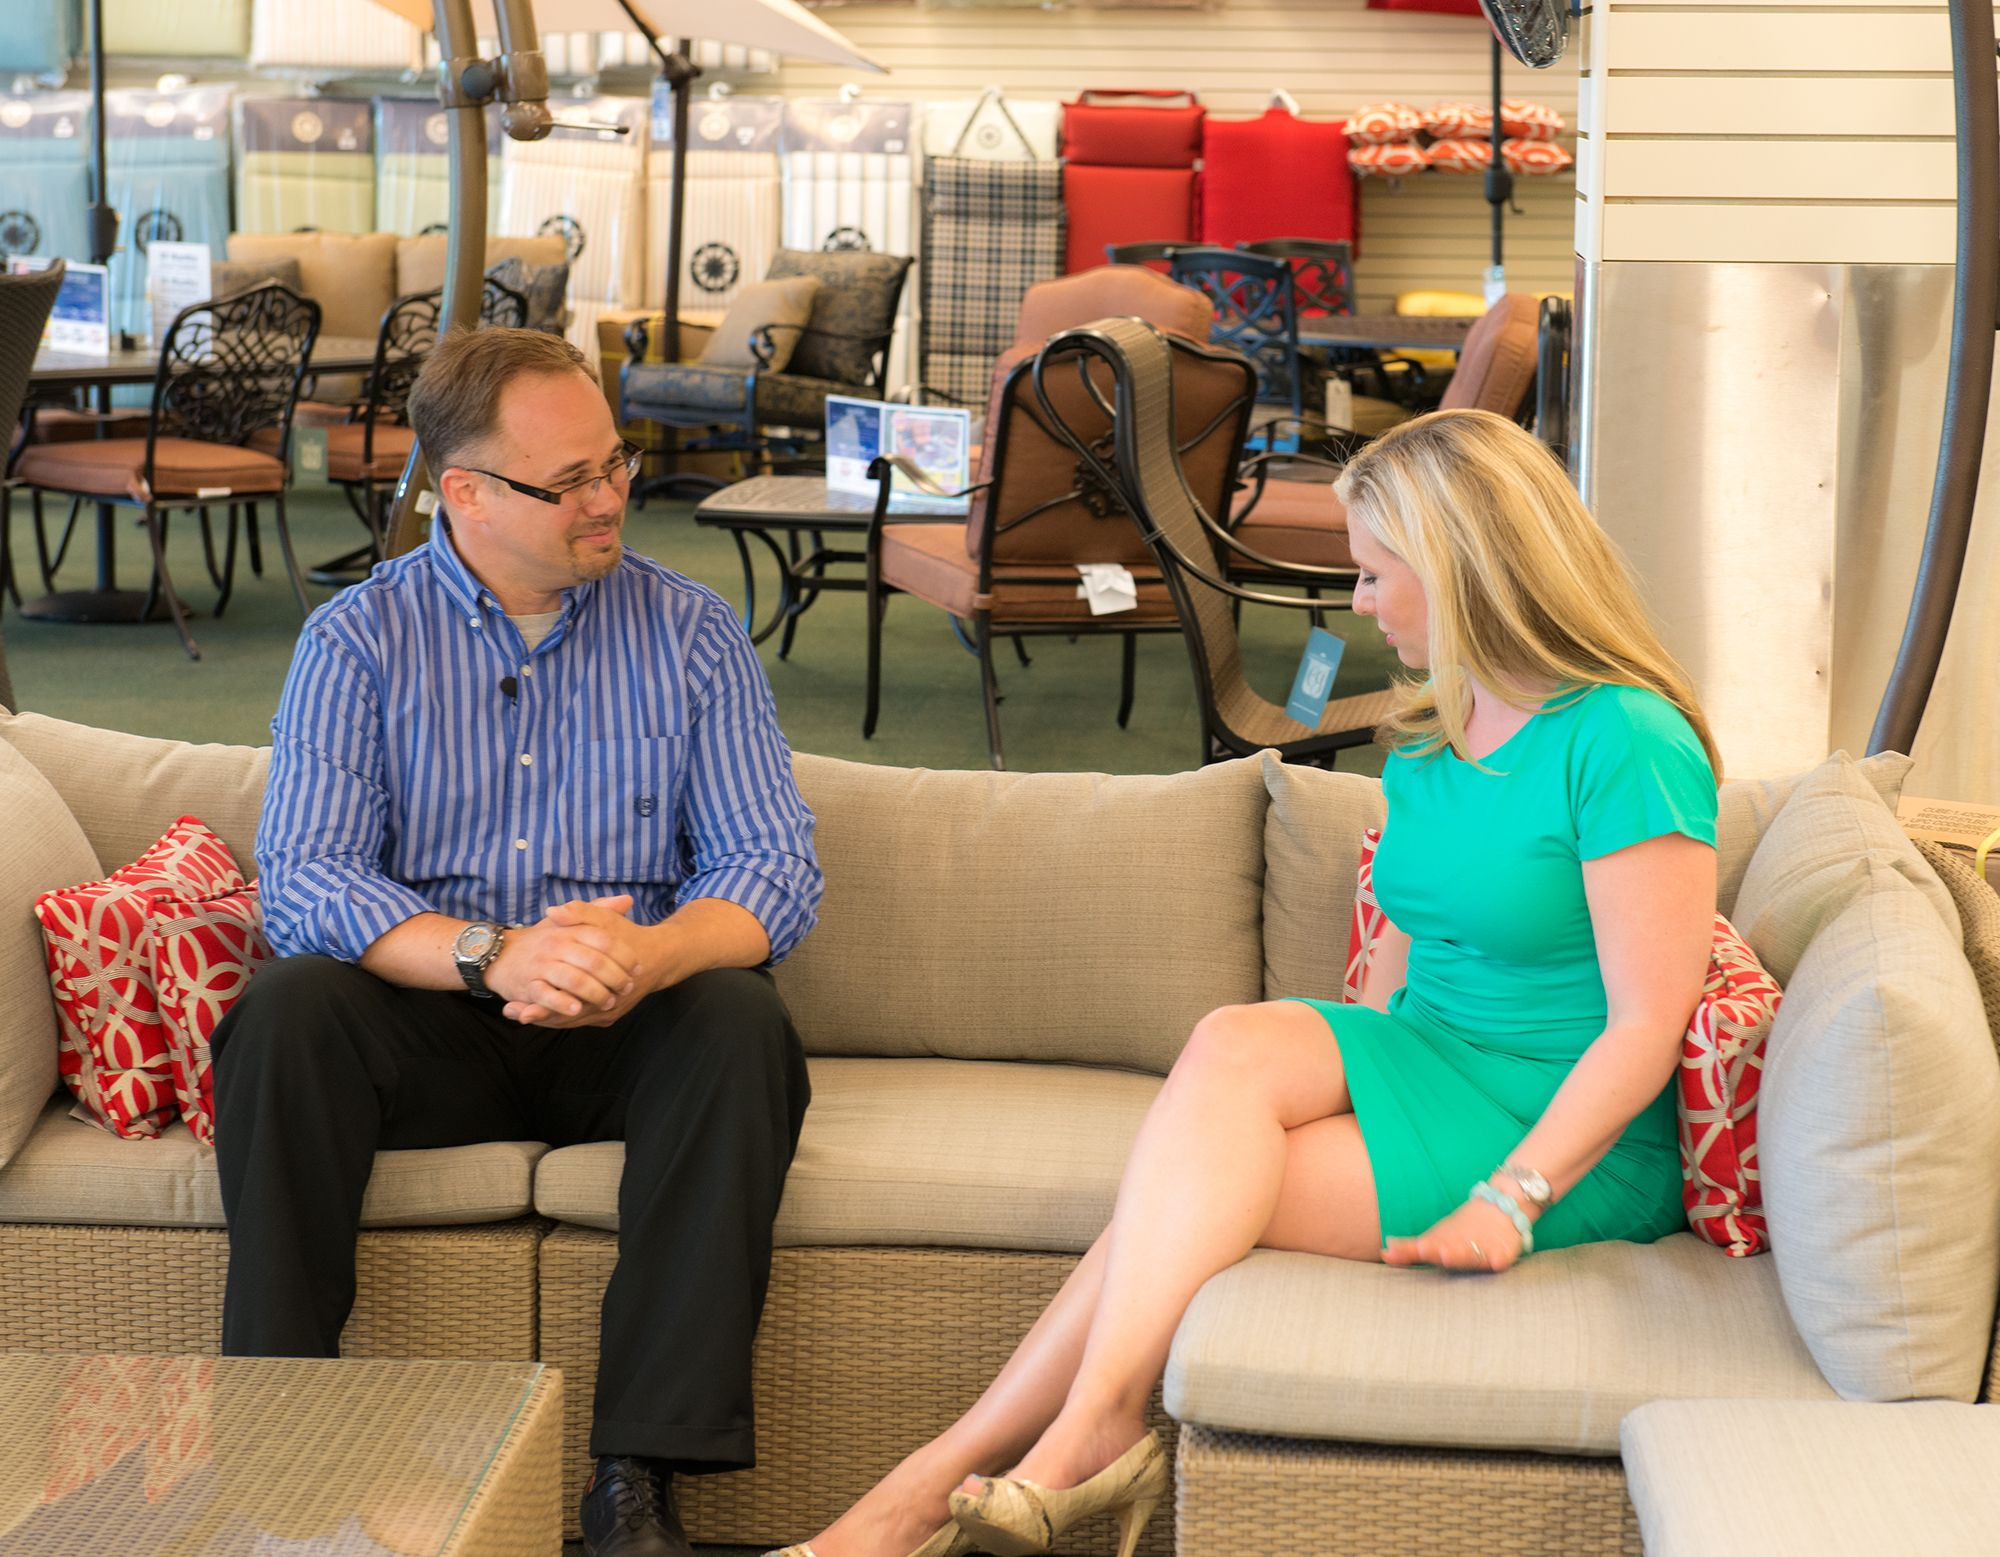 kara sundlun talks to namco about their brand new line of luxurious yet affordable patio furniture - Affordable Patio Furniture